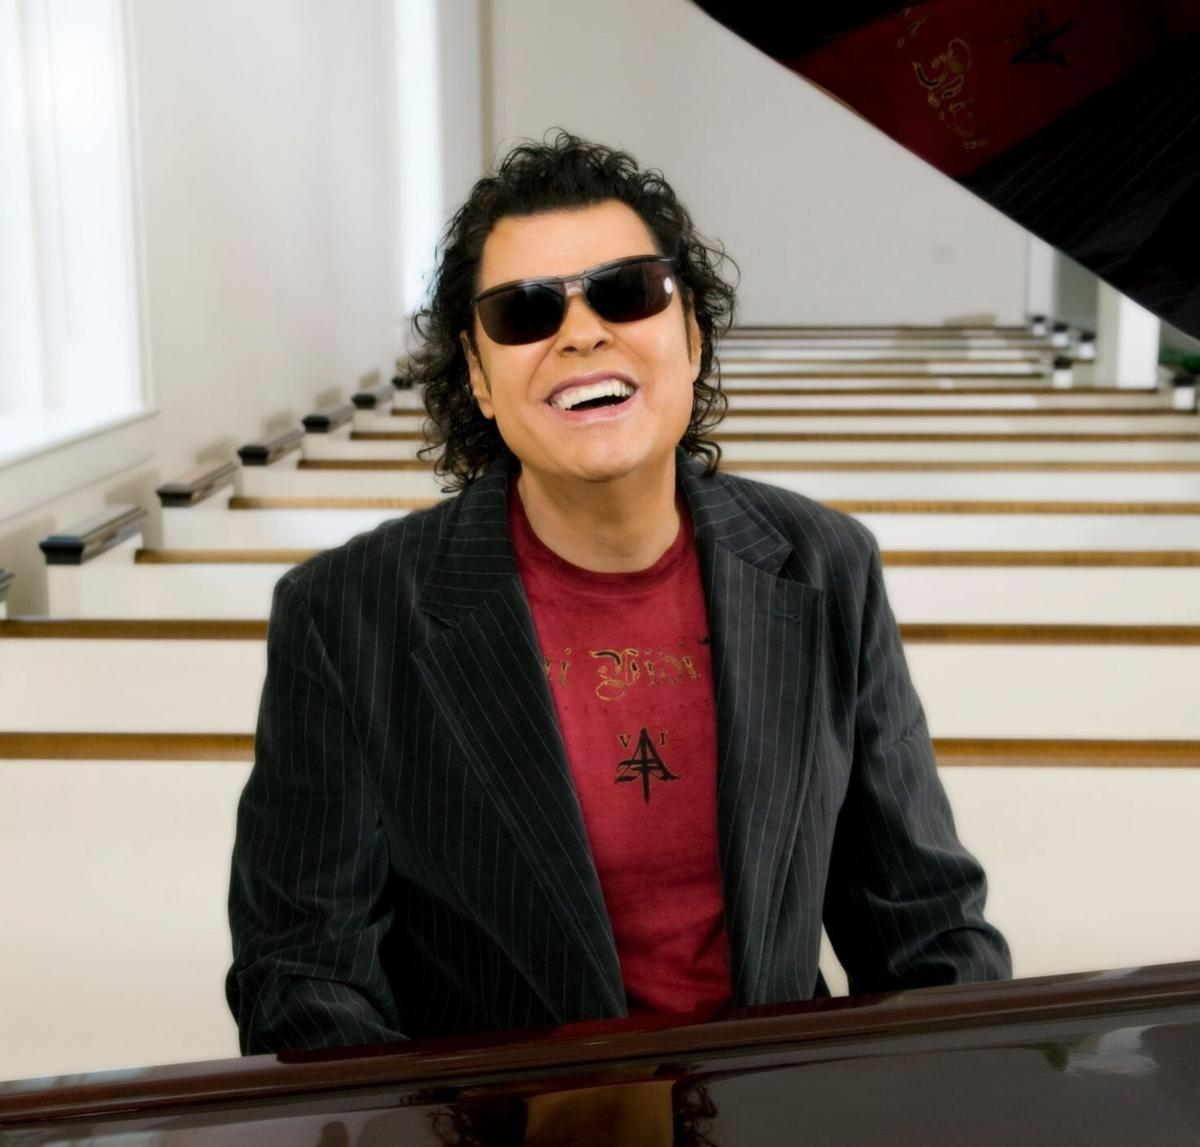 Glendale native joins Ronnie Milsap in concert Friday